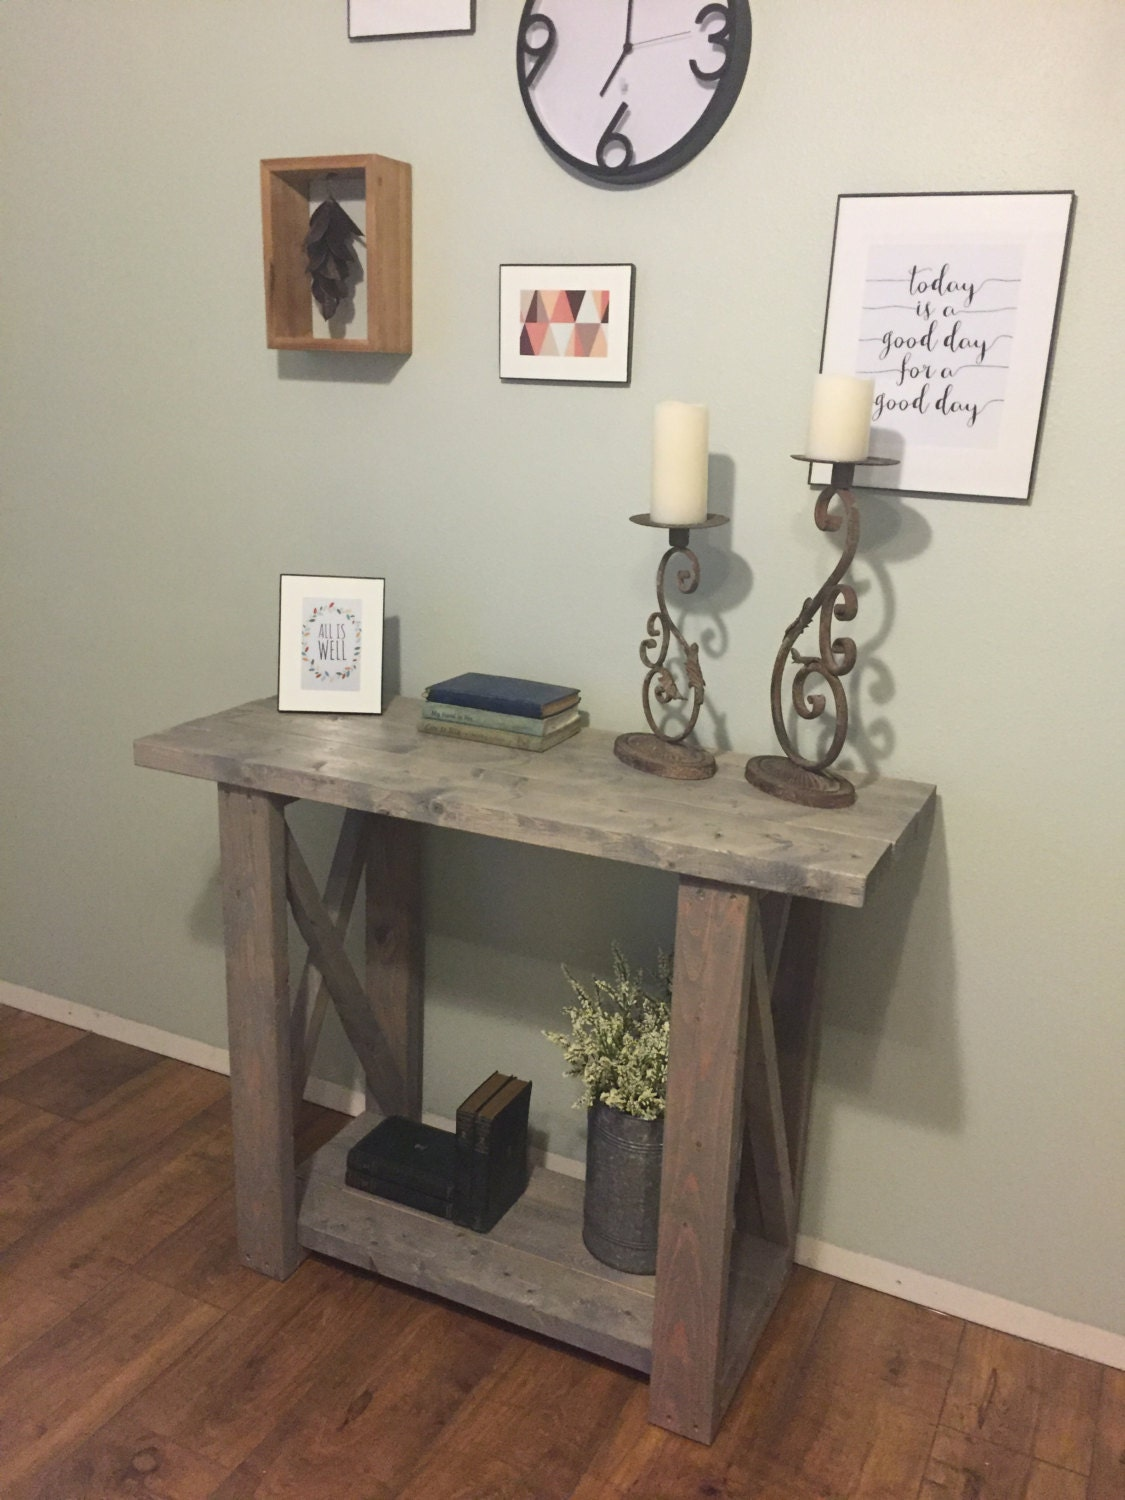 Foyer Table Etsy : Entryway table console by milkweedmill on etsy